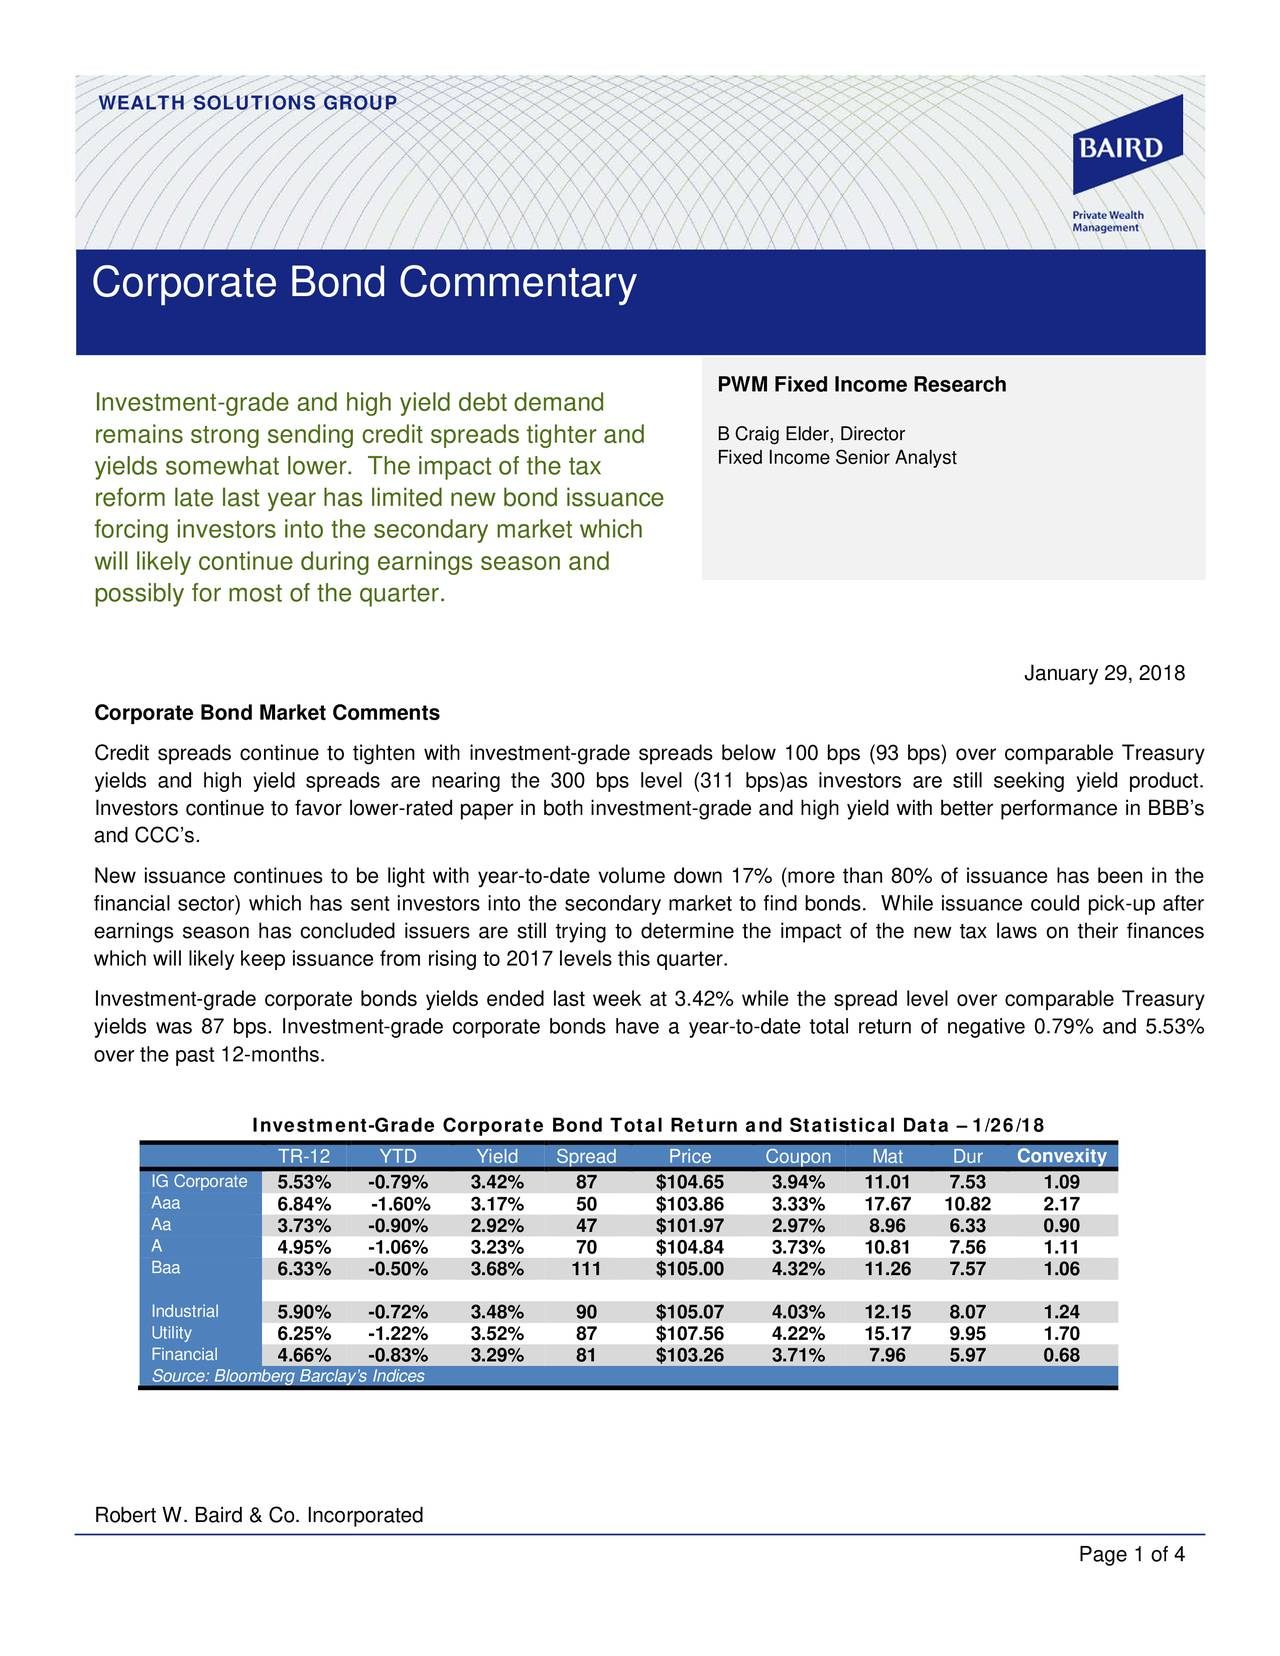 Corporate Bond Commentary PWM Fixed Income Research Investment-grade and high yield debt demand remains strong sending credit spreads tighter and B Craig Elder, Director Fixed Income Senior Analyst yields somewhat lower. The impact of the tax reform late last year has limited new bond issuance forcing investors into the secondary market which will likely continue during earnings season and possibly for most of the quarter. January 29, 2018 Corporate Bond Market Comments Credit spreads continue to tighten with investment -grade spreads below 100 bps (93 bps) over comparable Treasury yields and high yi eld spreads are nearing the 300 bps level (311 bps) as investors are still seeking yield product. Investors continue to favor lower-rated paper in both investment-grade and high yield with better performance in BBB's and CCC's. New issuance continues to be light with year -to-date volume down 17% (more than 80% of issuance has been in the financial sector) which has sent investors into the secondary market to find bonds. While issuance could pick -up after earnings season has concluded issuers are still tr ying to determine the impact of the new tax laws on their finances which will likely keep issuance from rising to 2017 levels this quarter. Investment-grade corporate bonds yields ended last week at 3. 42% while the spread level over comparable Treasury yields was 87 bps. Investment-grade corporate bonds have a year -to-date total return of negative 0. 79% and 5. 53% over the past 12-months. Investment-Grade Corporate Bond Total Return and Statistical Data – 1/26/18 TR-12 YTD Yield Spread Price Coupon Mat Dur Convexity IG Corporate 5.53% -0.79% 3.42% 87 $104.65 3.94% 11.01 7.53 1.09 Aaa 6.84% -1.60% 3.17% 50 $103.86 3.33% 17.67 10.82 2.17 Aa 3.73% -0.90% 2.92% 47 $101.97 2.97% 8.96 6.33 0.90 A 4.95% -1.06% 3.23% 70 $104.84 3.73% 10.81 7.56 1.11 Baa 6.33% -0.50% 3.68% 111 $105.00 4.32% 11.26 7.57 1.06 Industrial 5.90% -0.72% 3.48% 90 $105.07 4.03% 12.15 8.07 1.24 Utility 6.25% -1.22% 3.52% 87 $107.56 4.22% 15.17 9.95 1.70 Financial 4.66% -0.83% 3.29% 81 $103.26 3.71% 7.96 5.97 0.68 Source: Bloomberg Barclay's Indices Robert W. Baird & Co. Incorporated Page 1 of 4